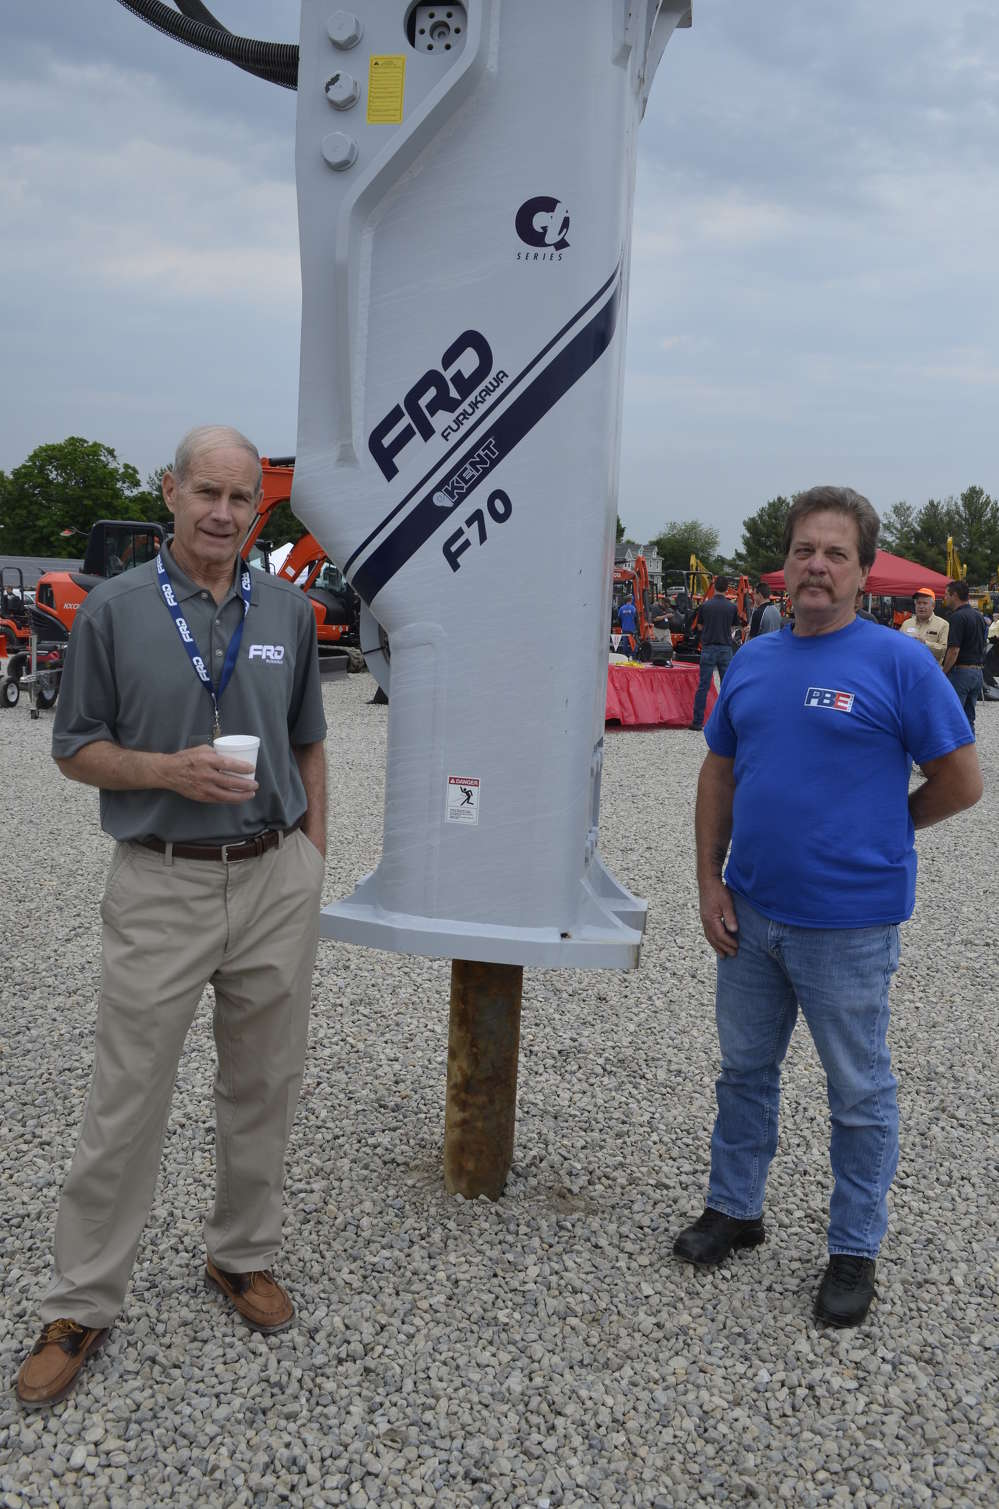 Fritz Muench (L) of Furukawa (Kent hammers) discusses some of his breakers' newest features with Mike Bodnar of Pine Bush Equipment.